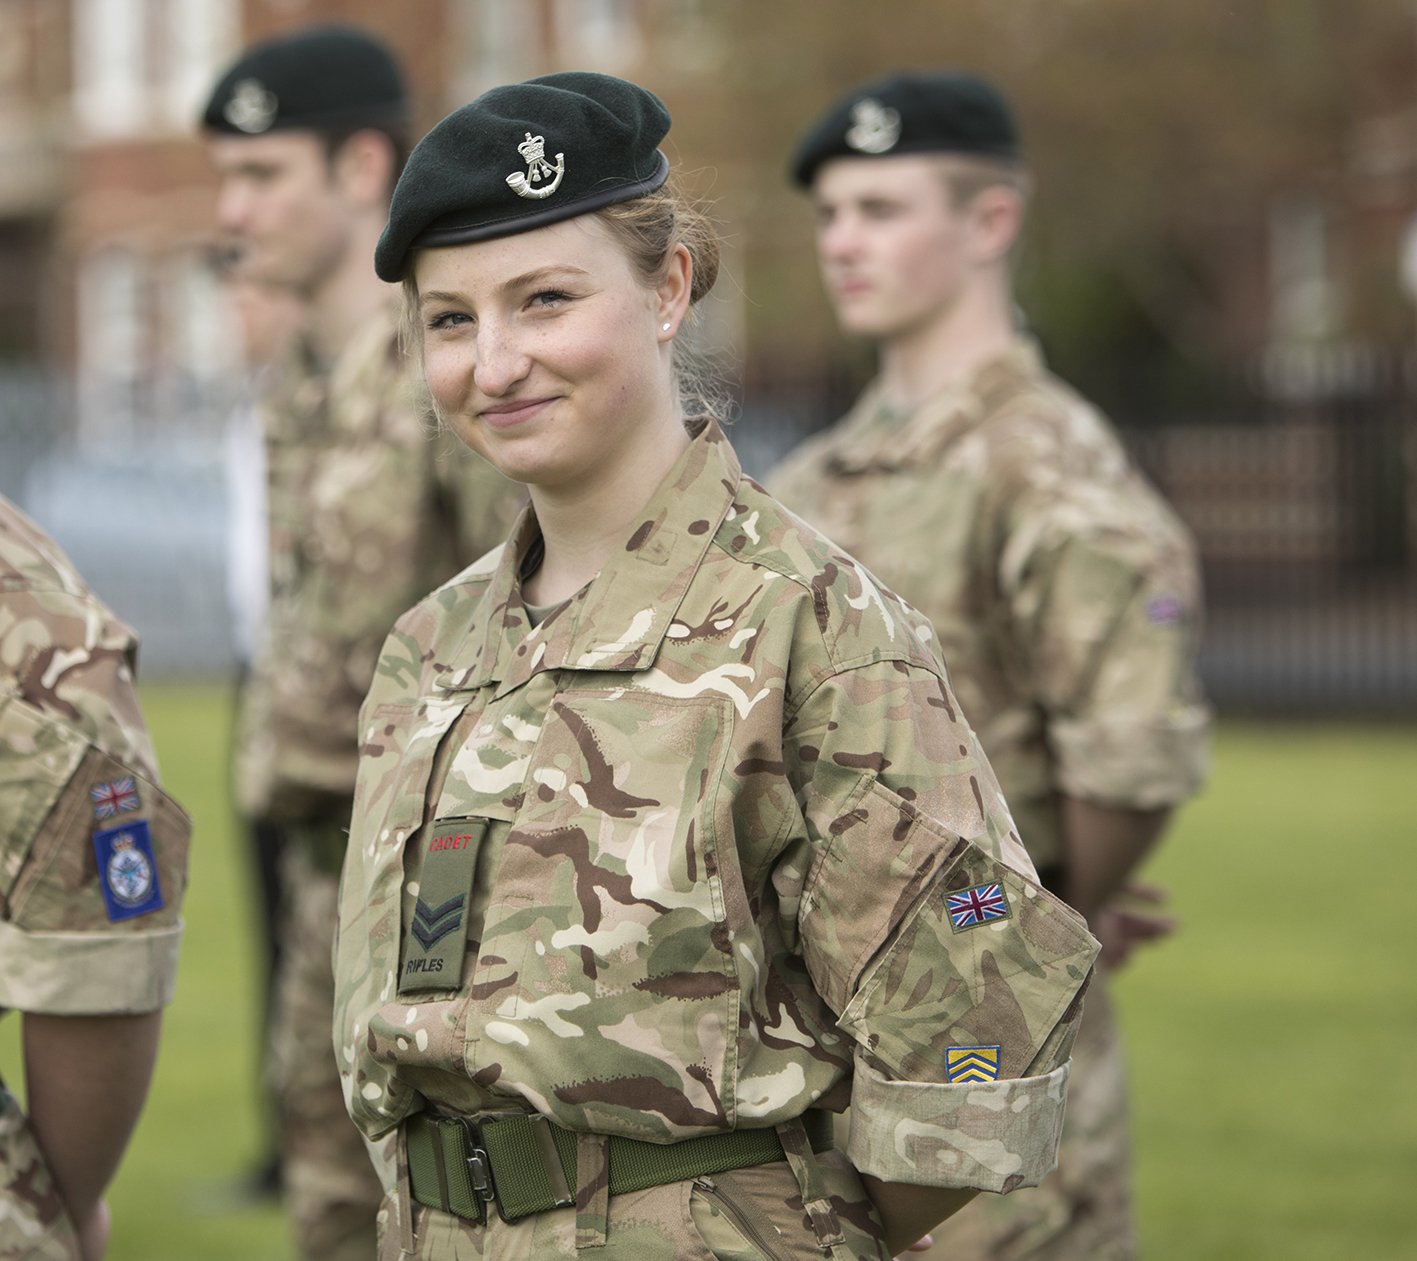 CCF Army dinner celebrates 40 years of female cadets